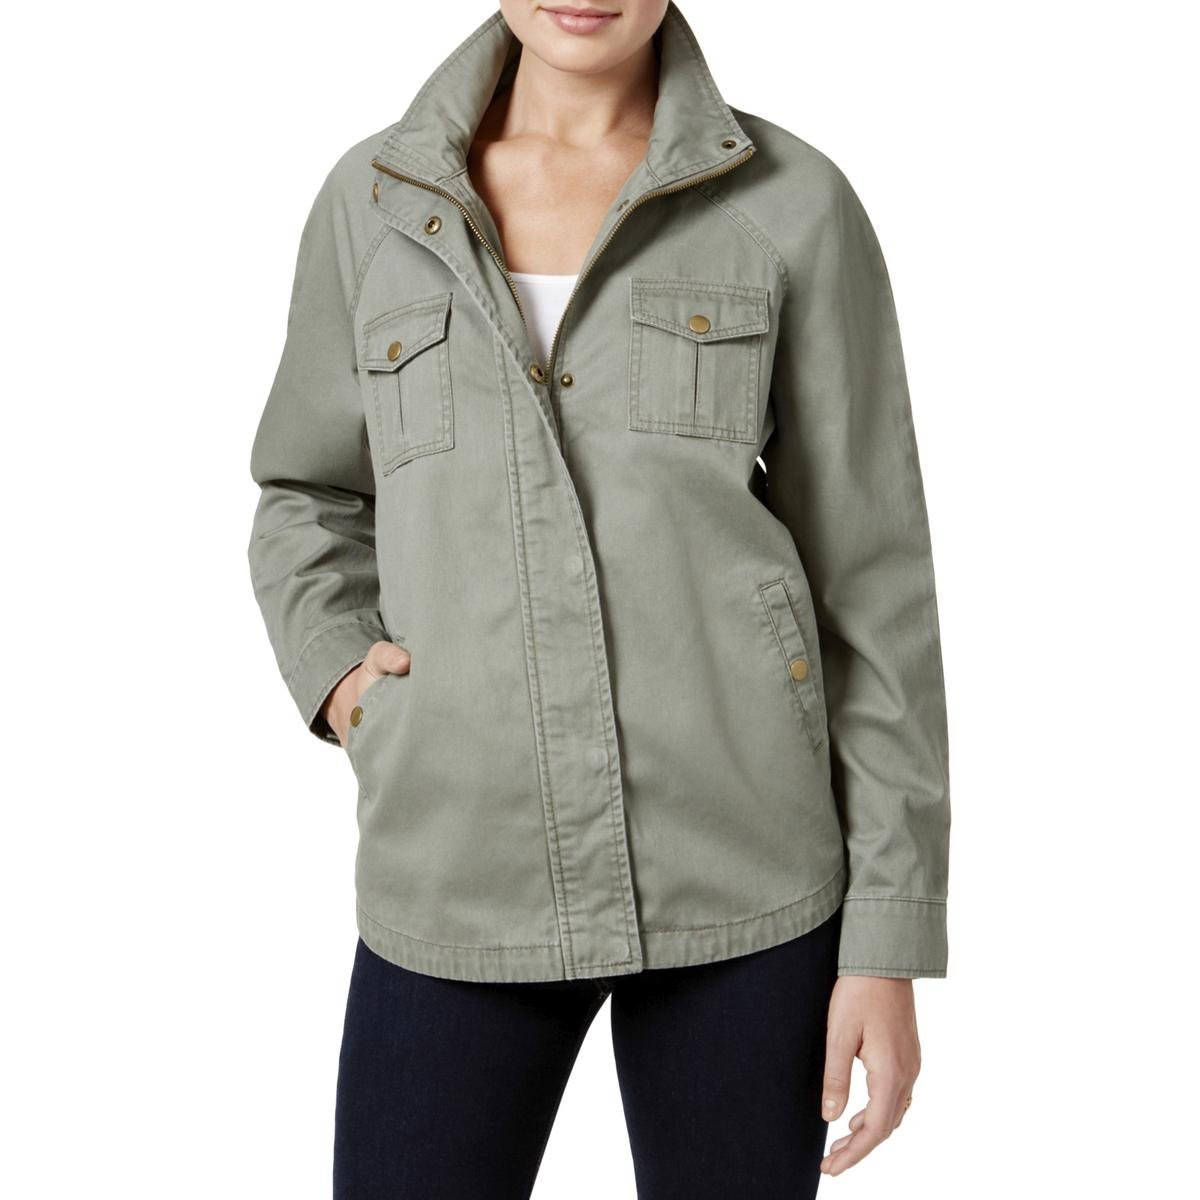 Style & Co.. Womens Petites Twill Embroidered Jacket Green PS